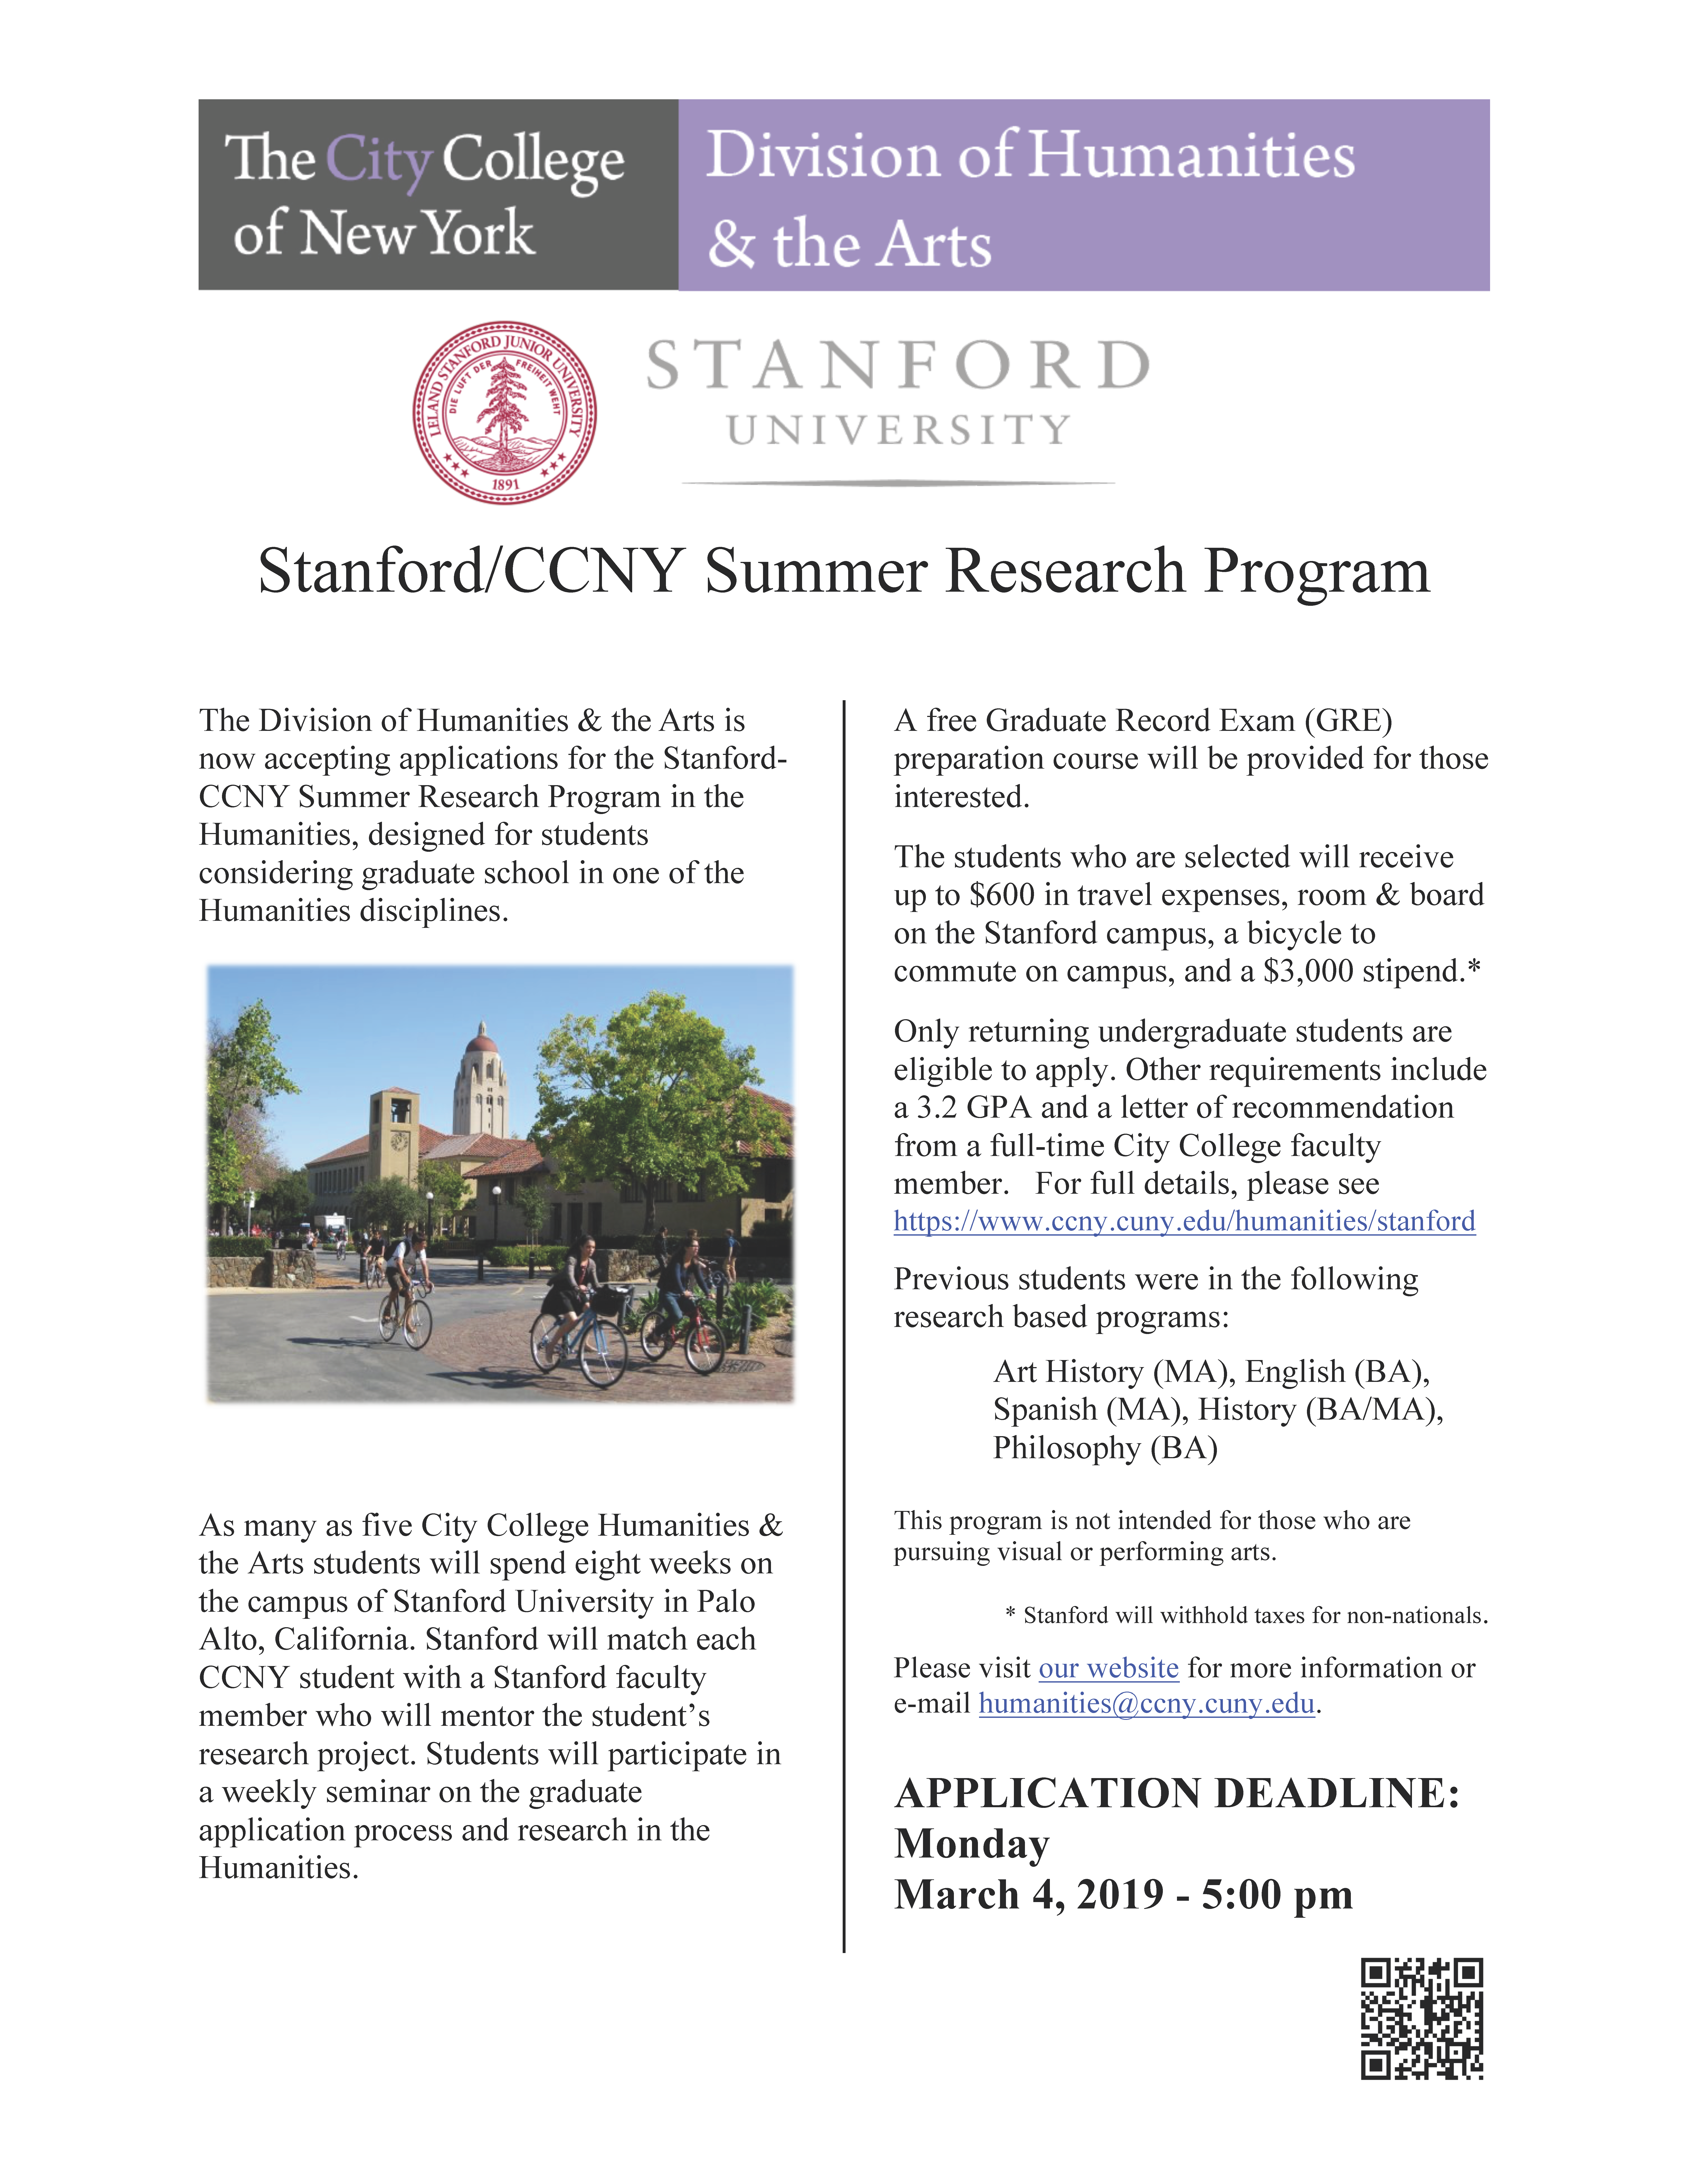 Stanford-CCNY Summer Research Program 2019